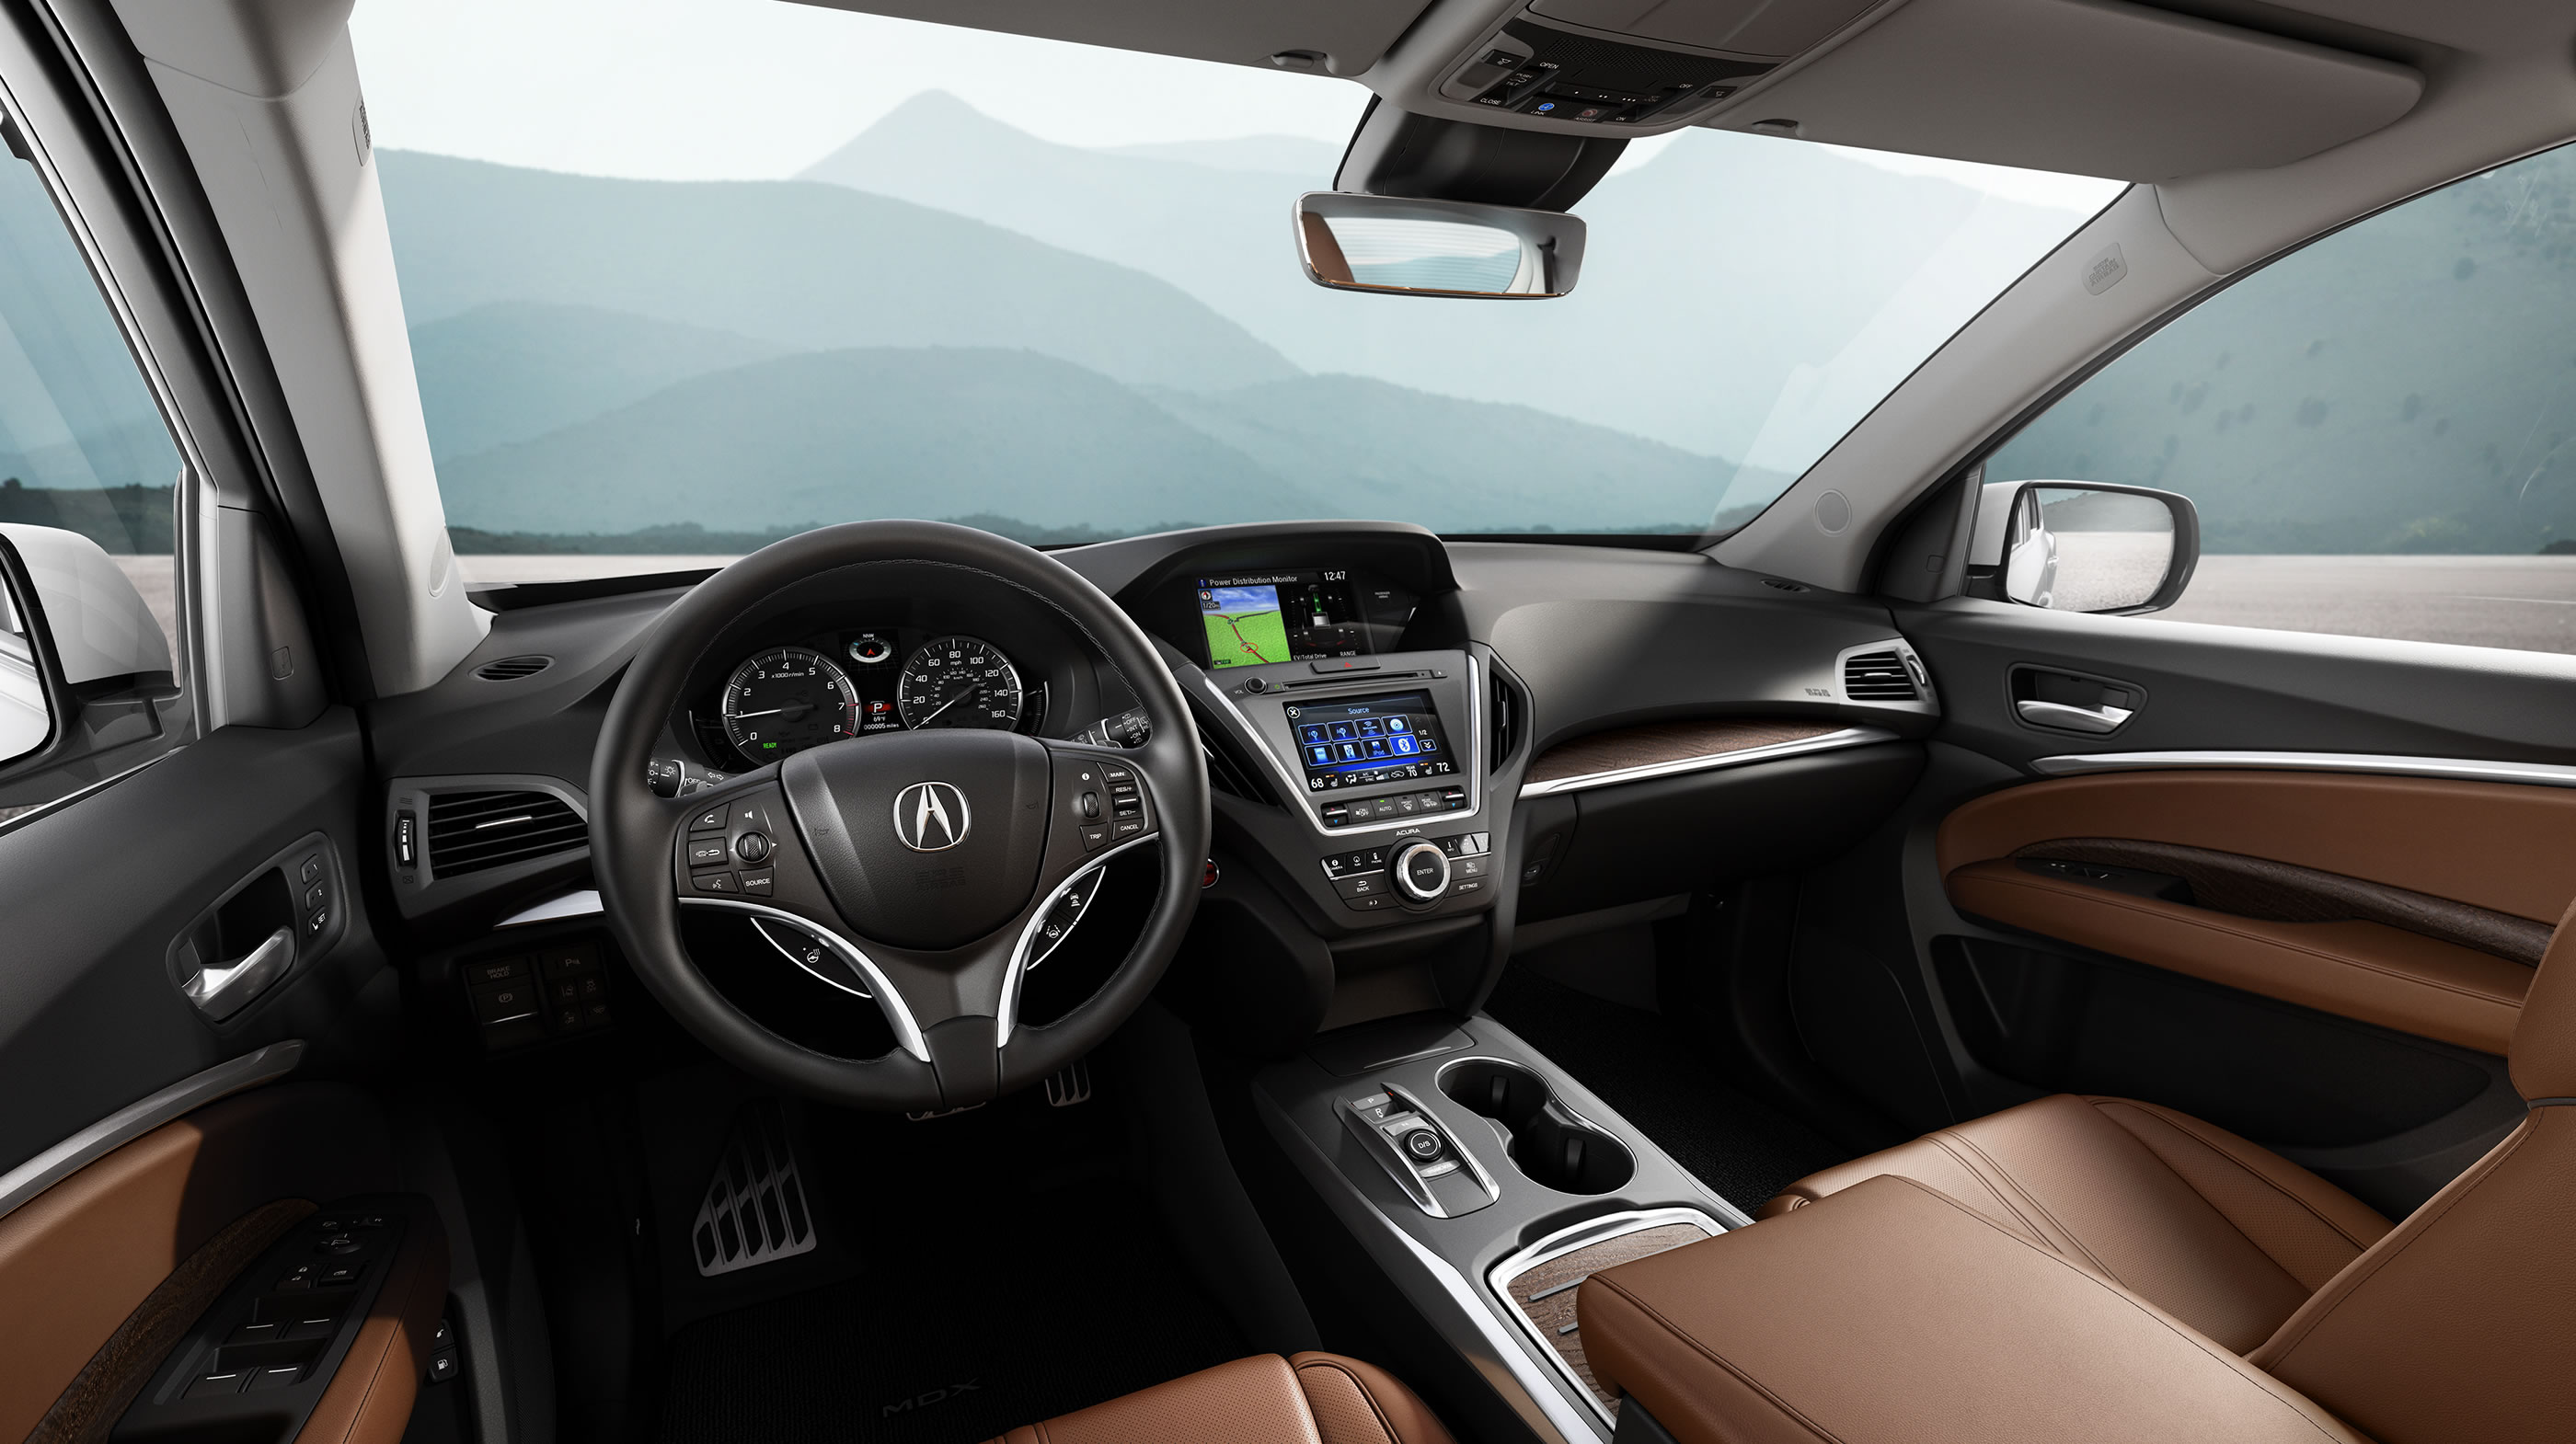 New Acura MDX Lease And Finance Offers McGrath Acura Of Westmont - Lease an acura